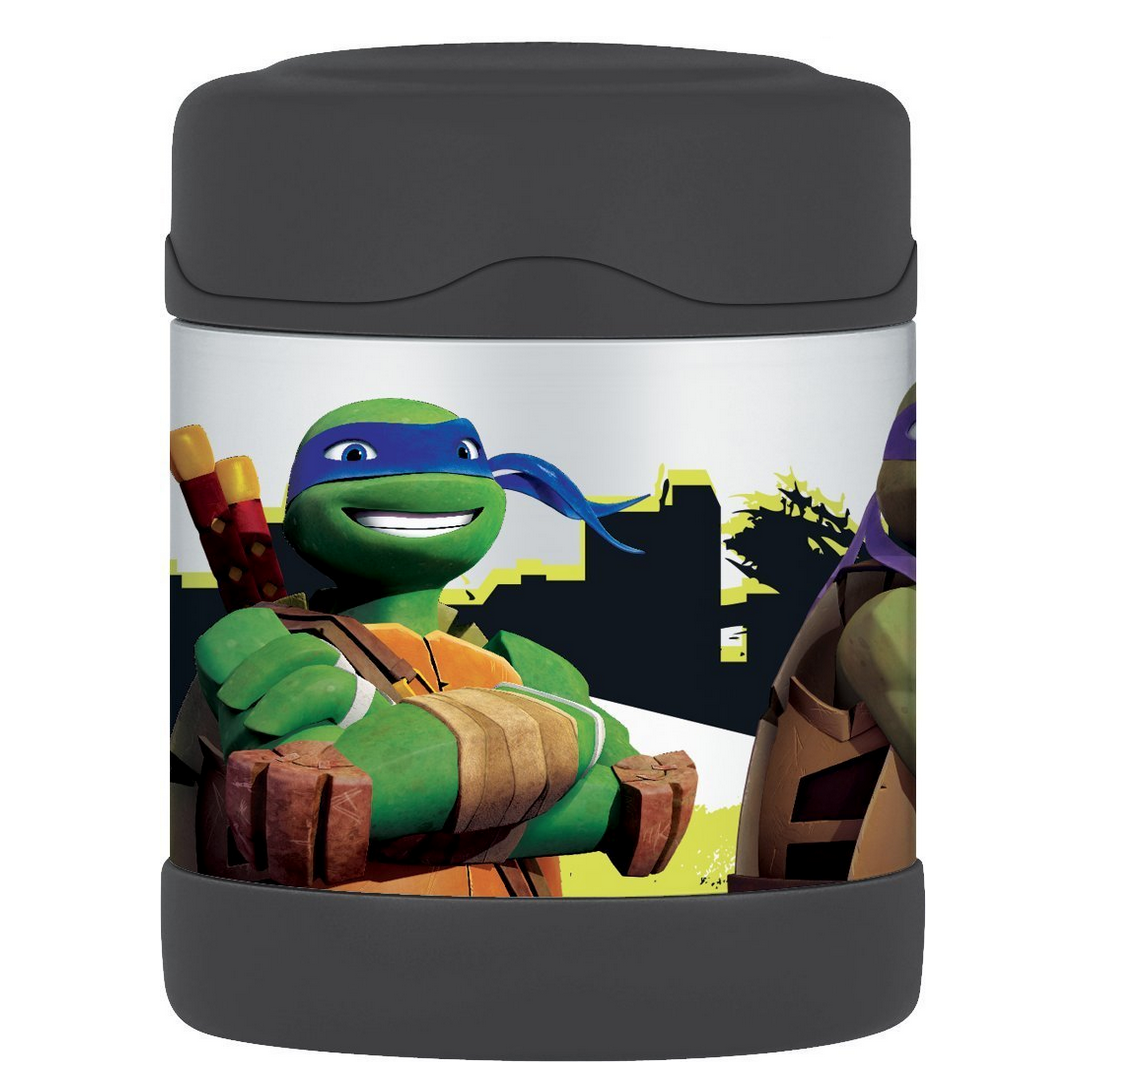 Teenage Mutant Ninja Turtle Thermos Funtainer Only $12.99 (Reg. $17.99!)